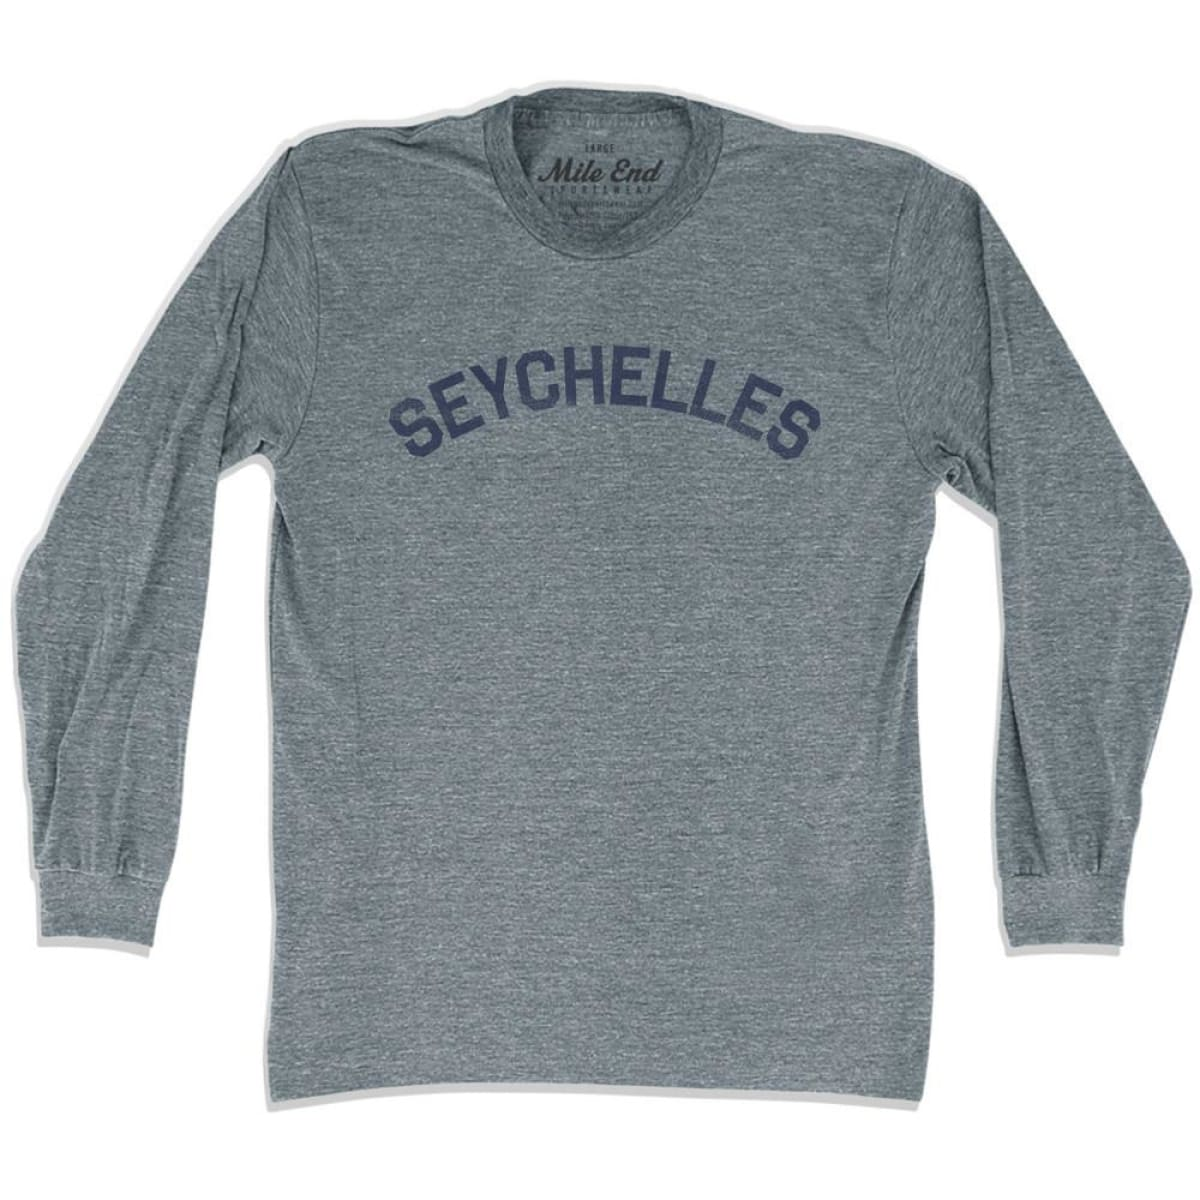 Seychelles City Vintage Long Sleeve T-shirt - Athletic Grey / Adult X-Small - Mile End City